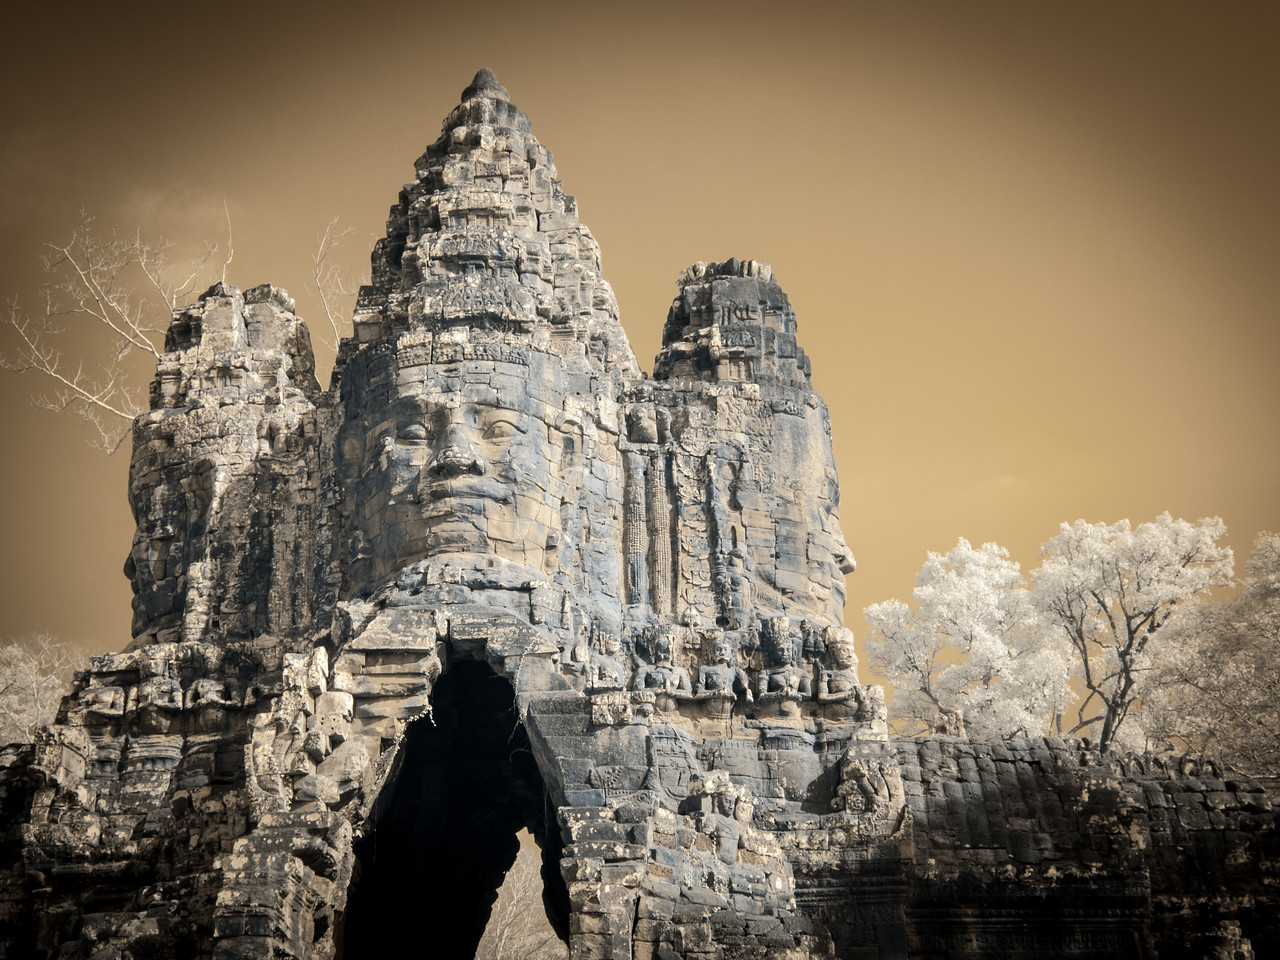 The South Gate, Angkor Thom.